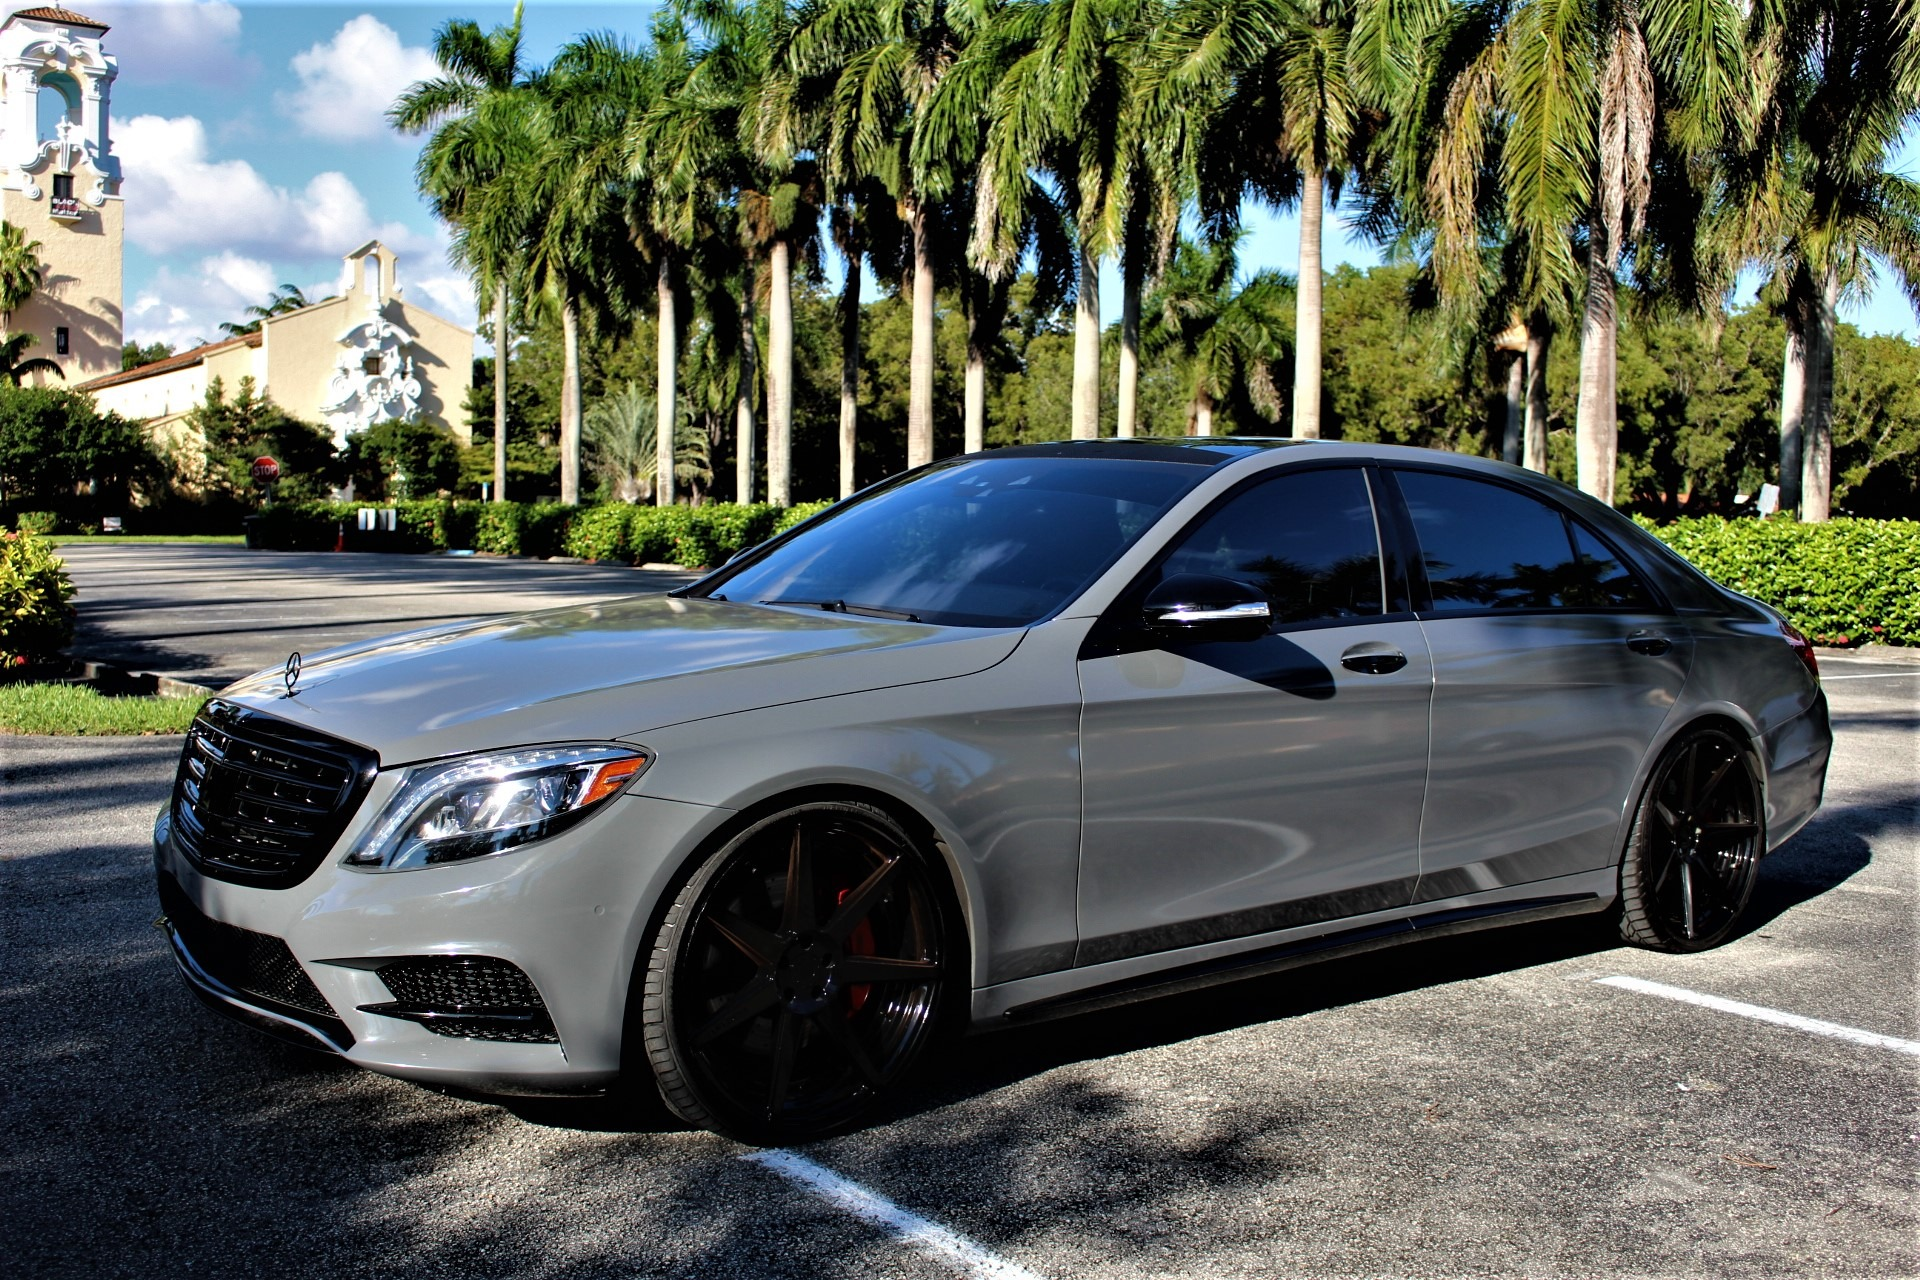 Used 2014 Mercedes-Benz S-Class S 550 for sale $54,850 at The Gables Sports Cars in Miami FL 33146 4